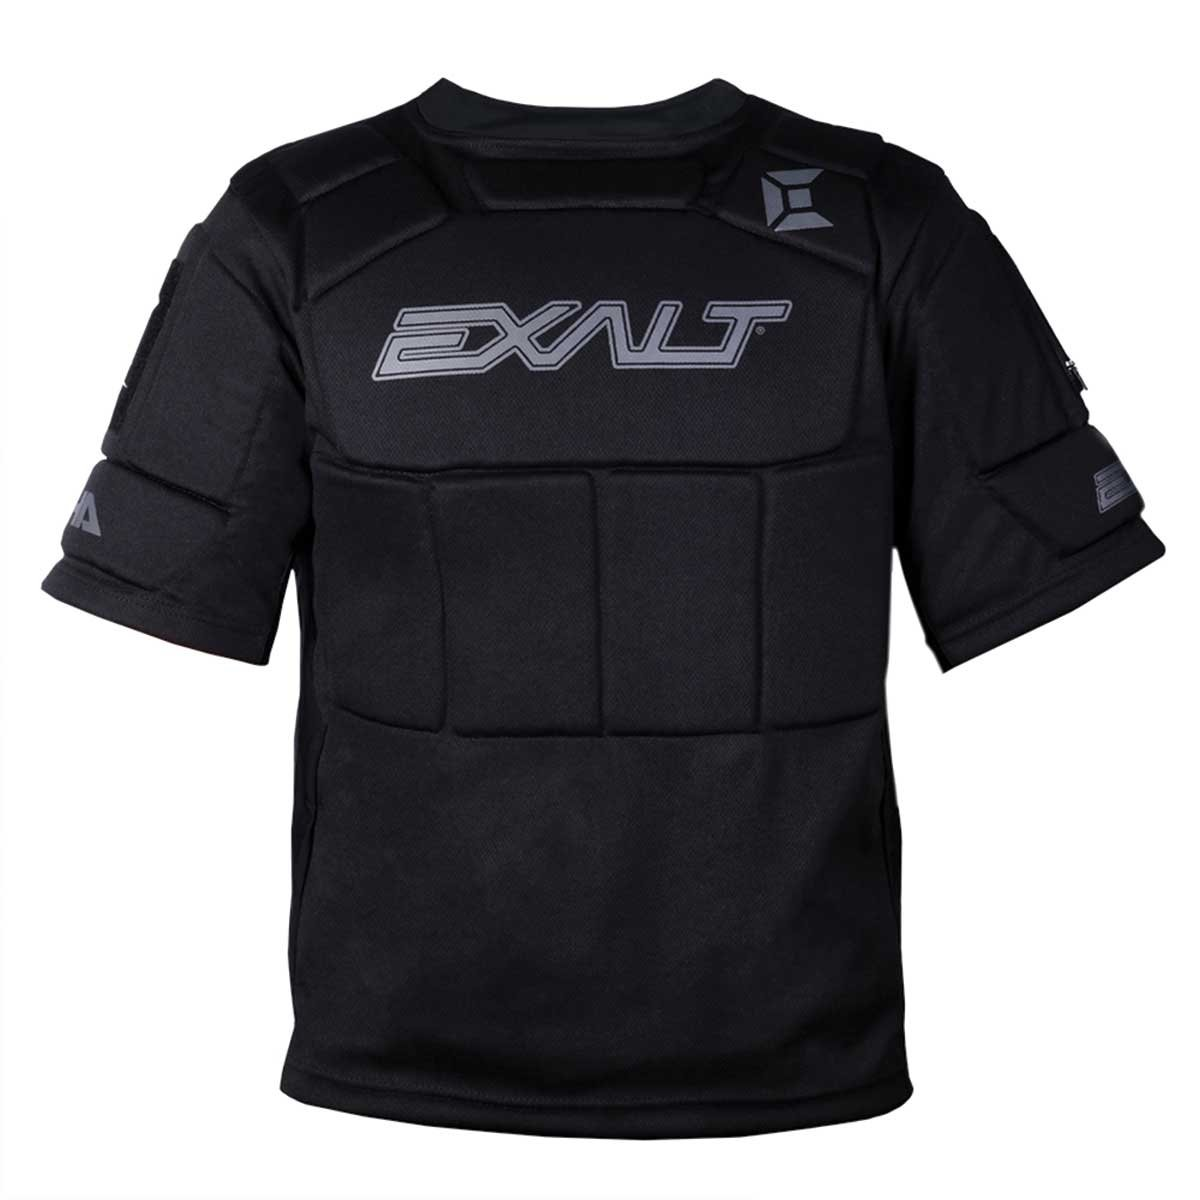 Exalt Paintball Alpha Chest Protector - Black - Youth by Exalt